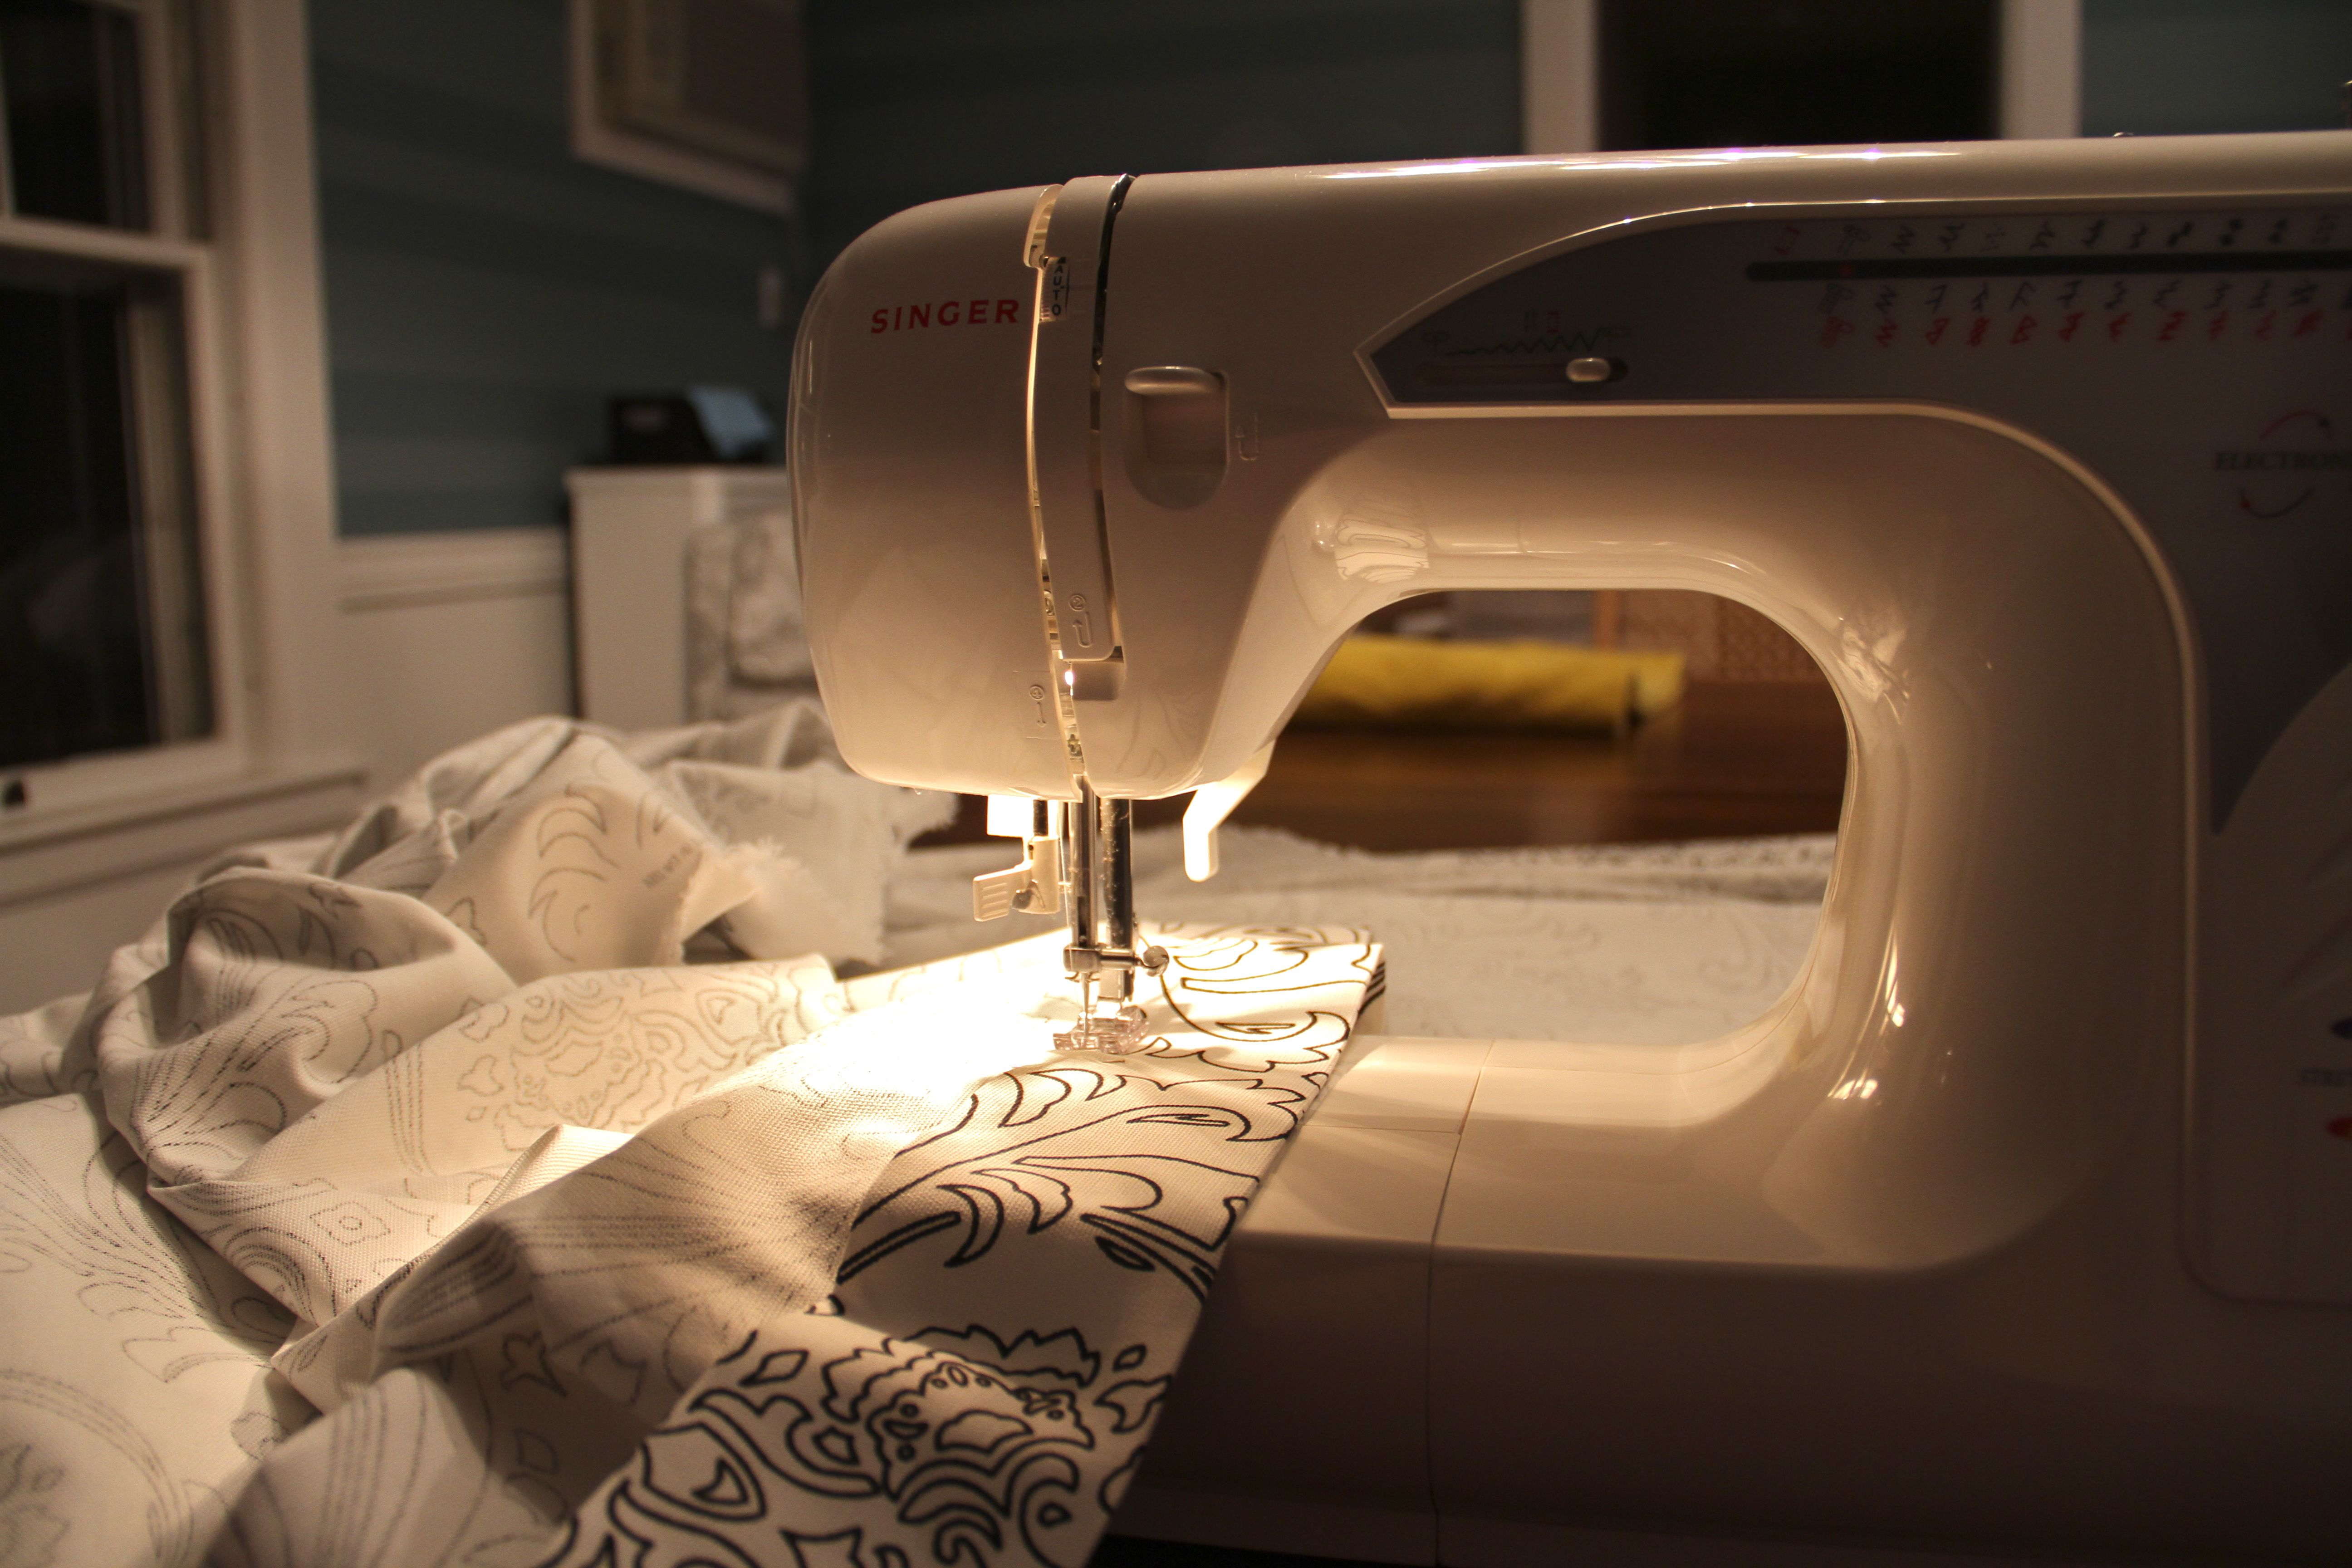 Once the sides were ironed, pinned, and ironed again, I was ready to sew.